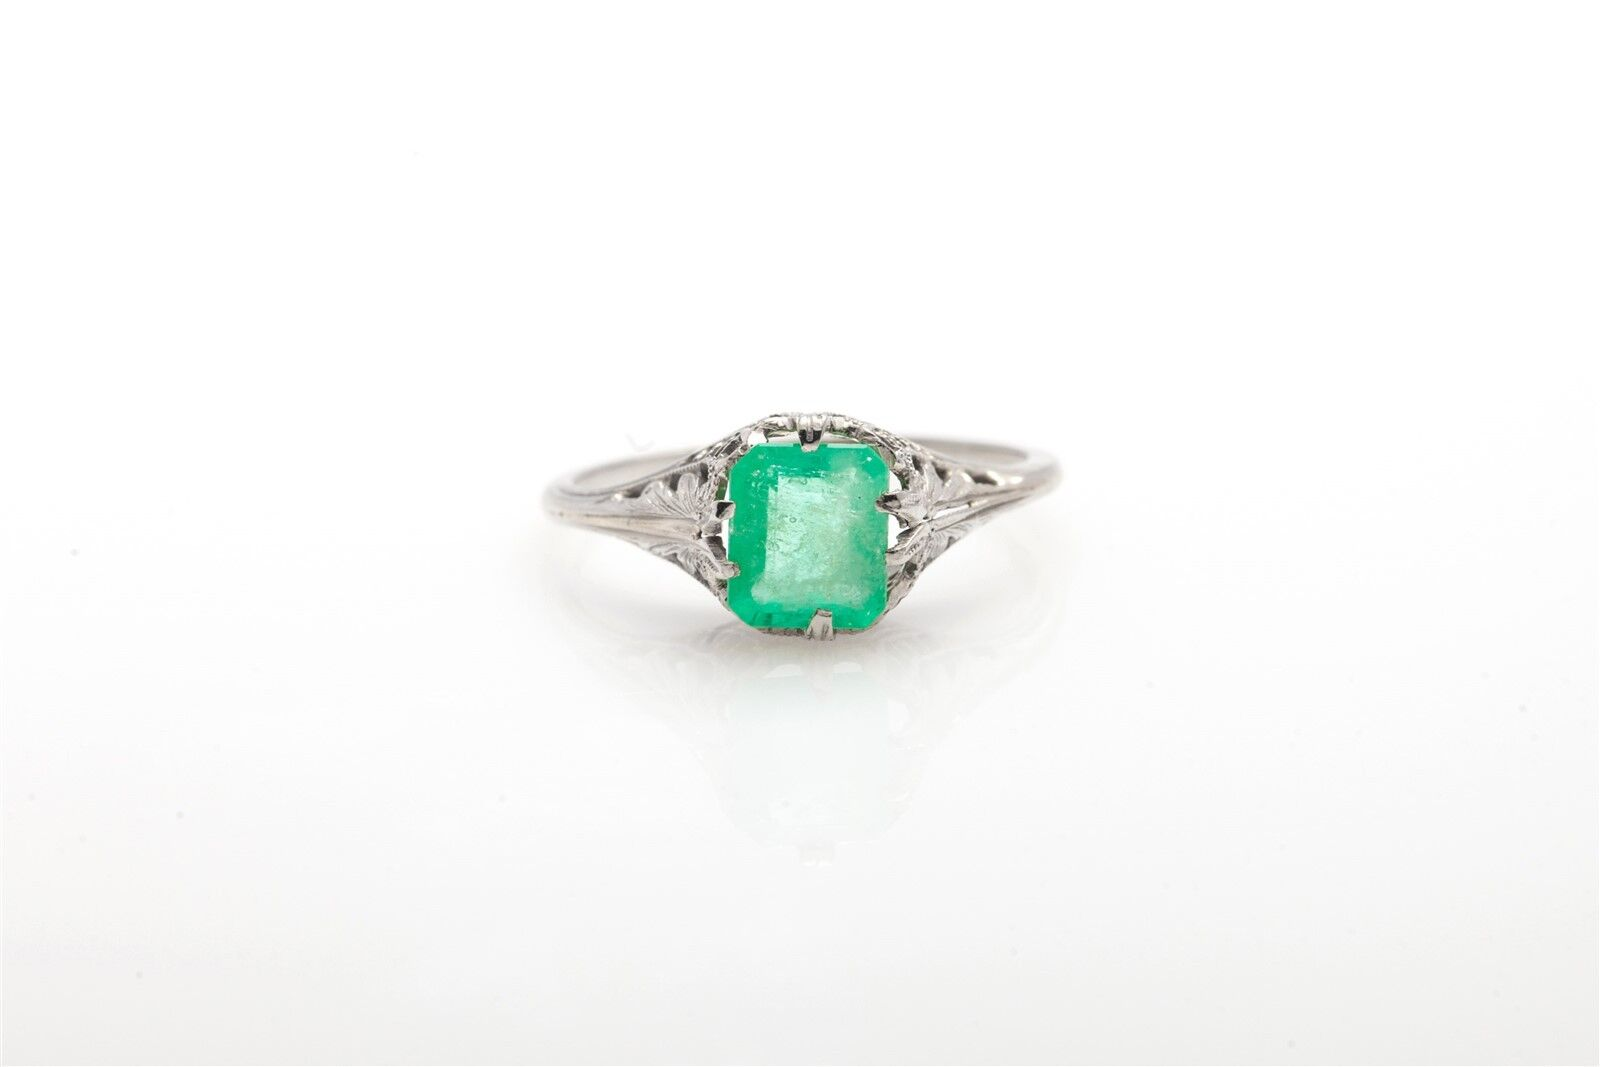 Antique 1920s  3400 2ct Colombian Emerald 14k White gold Filigree Ring